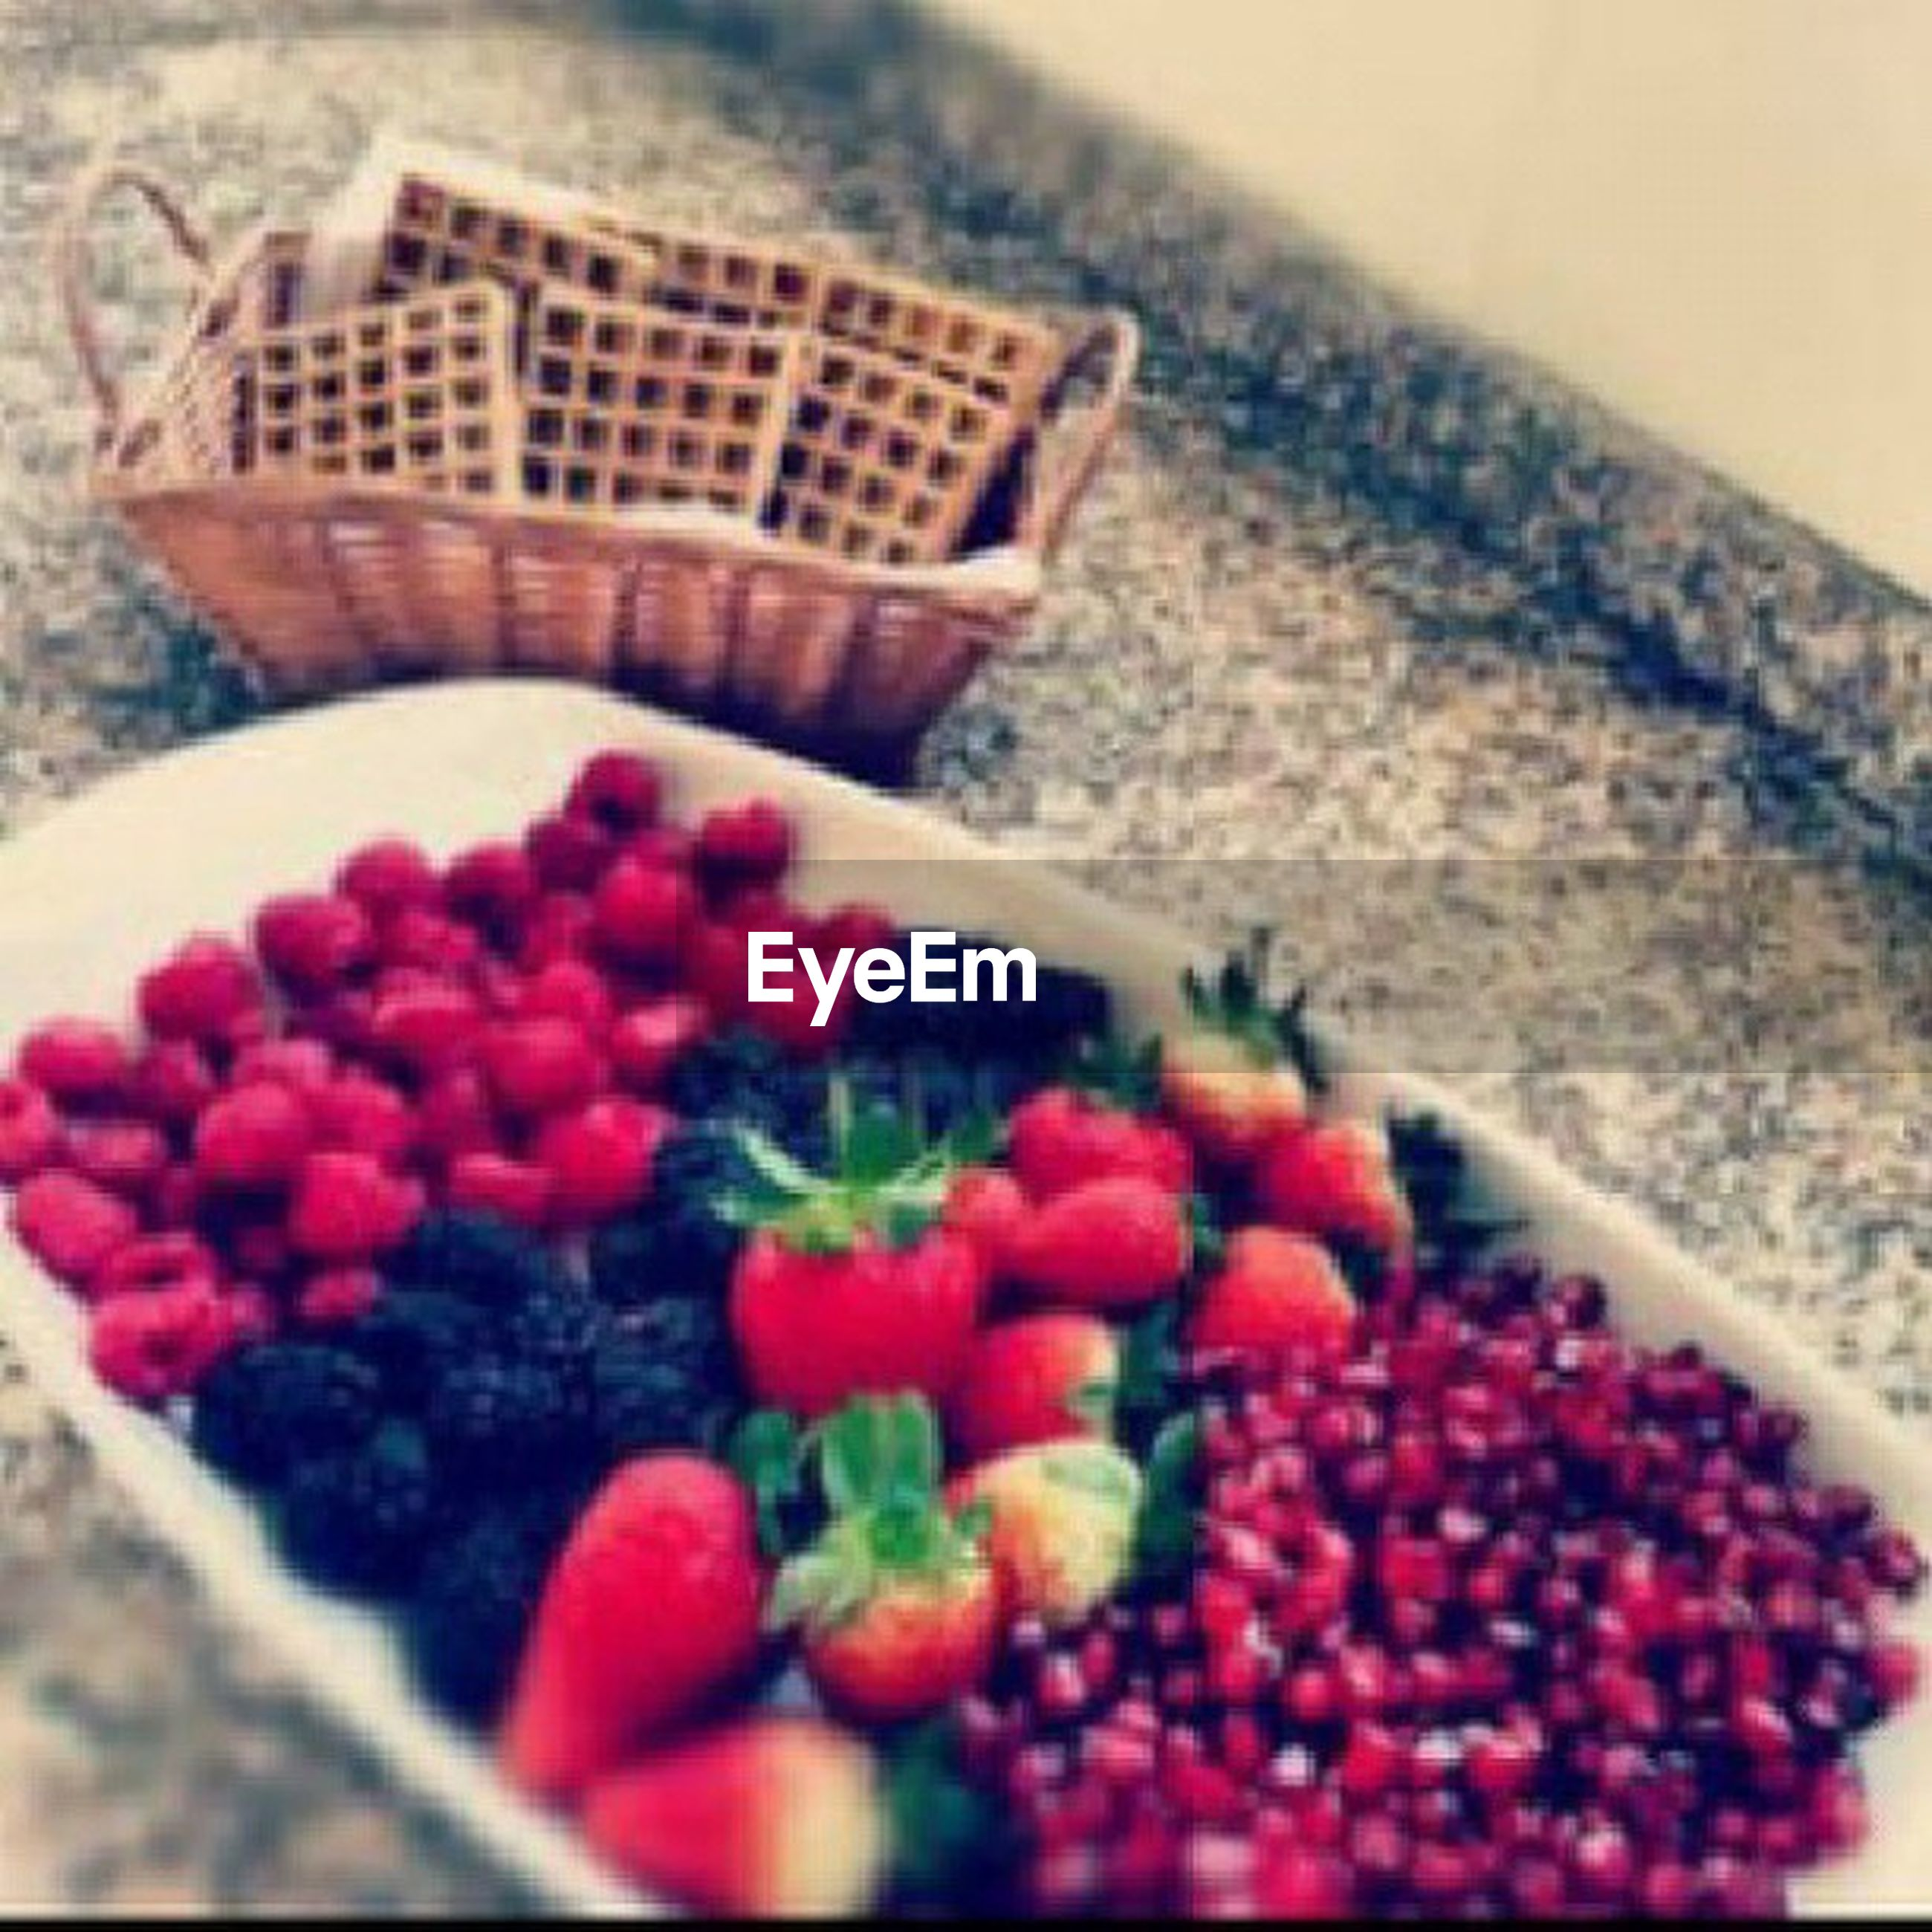 freshness, food and drink, food, fruit, red, healthy eating, close-up, selective focus, indoors, still life, focus on foreground, basket, abundance, high angle view, flower, no people, table, strawberry, large group of objects, berry fruit